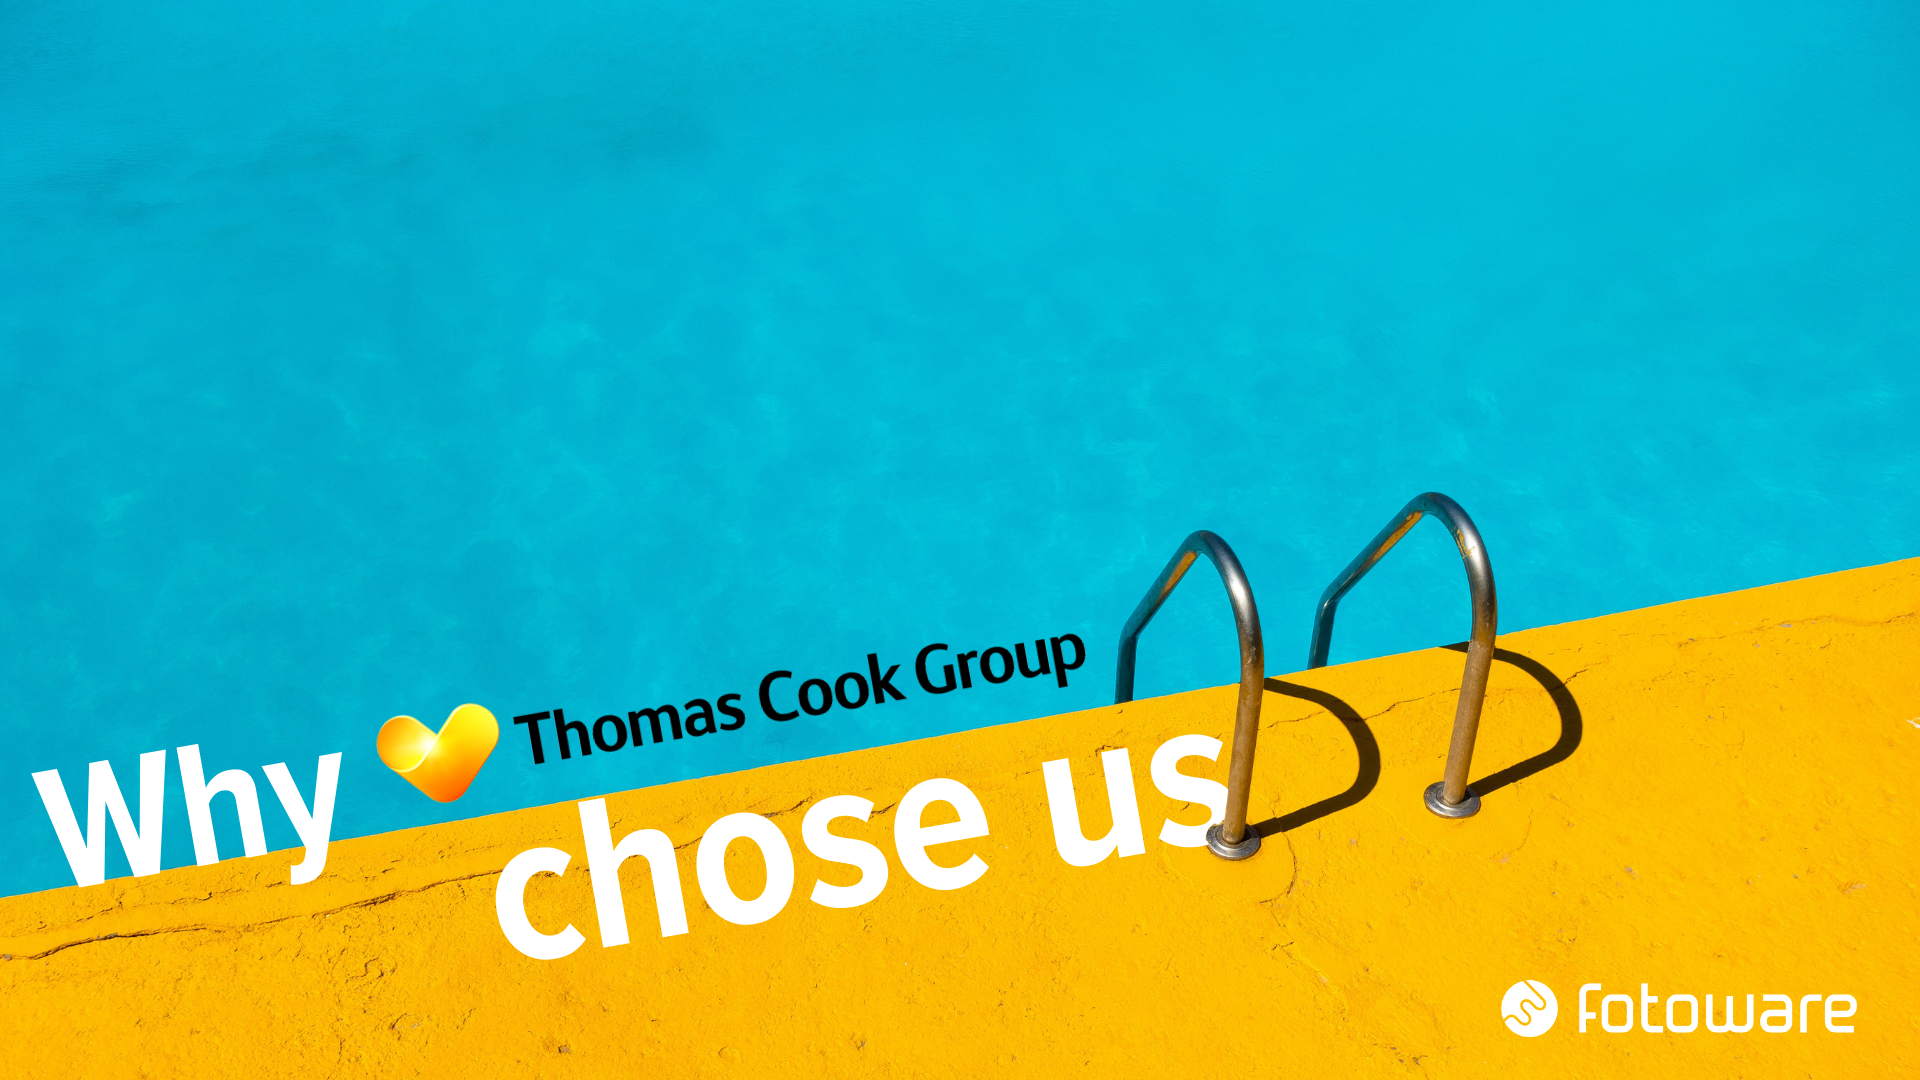 Why Thomas Cook Chose Us (1)